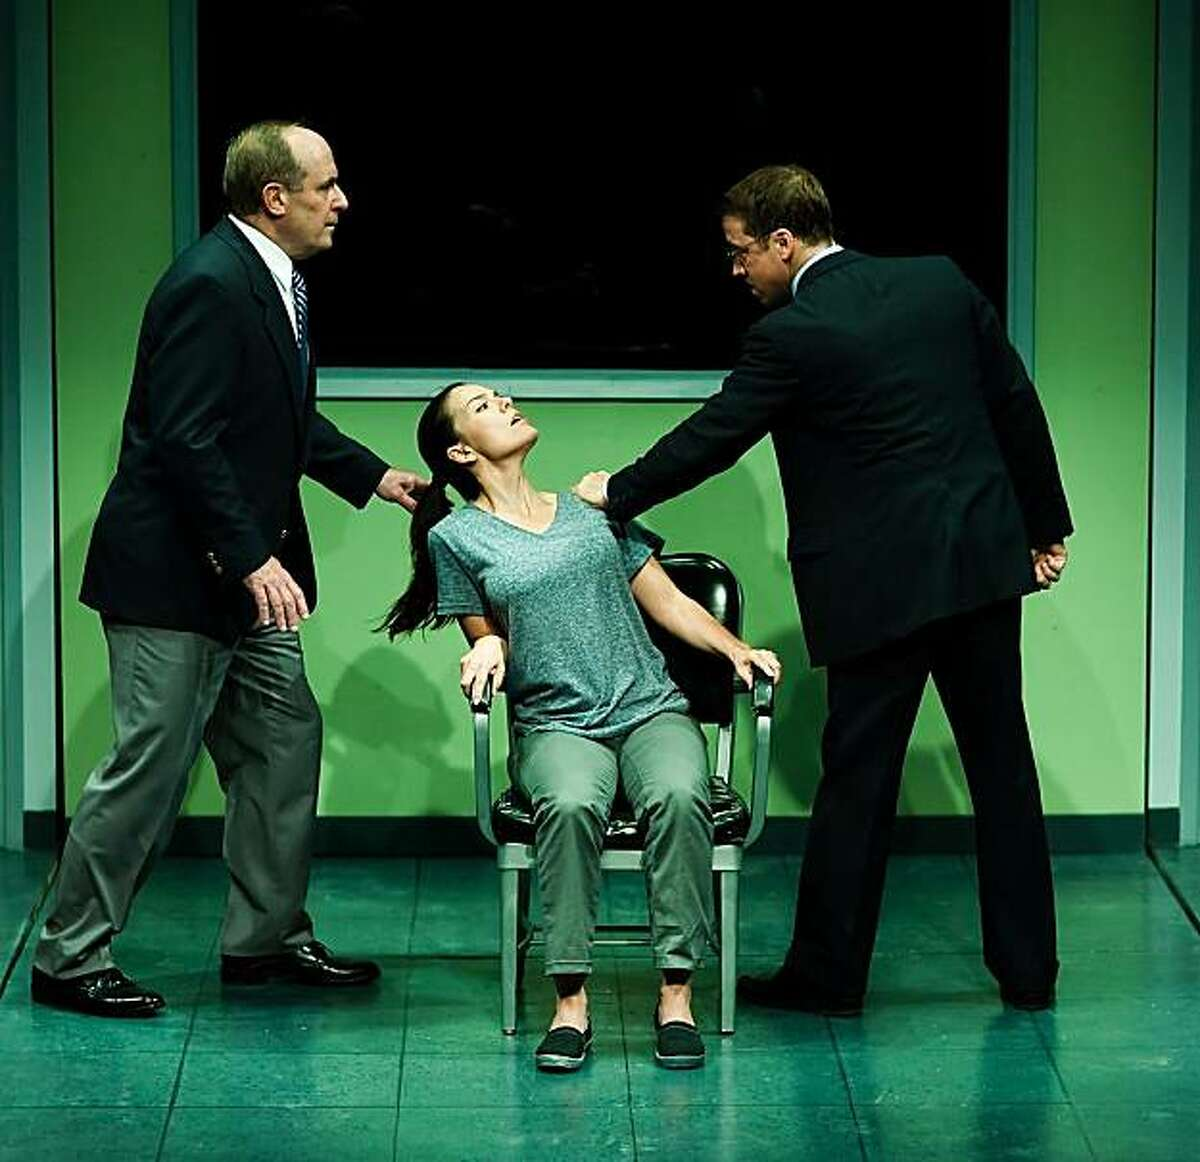 Mary (Stephanie Gularte, center) is interrogated by Elizabeth's men (Jesse Caldwell, left, and Peter Ruocco) in Mark Jackson's modernized version of Schiller's